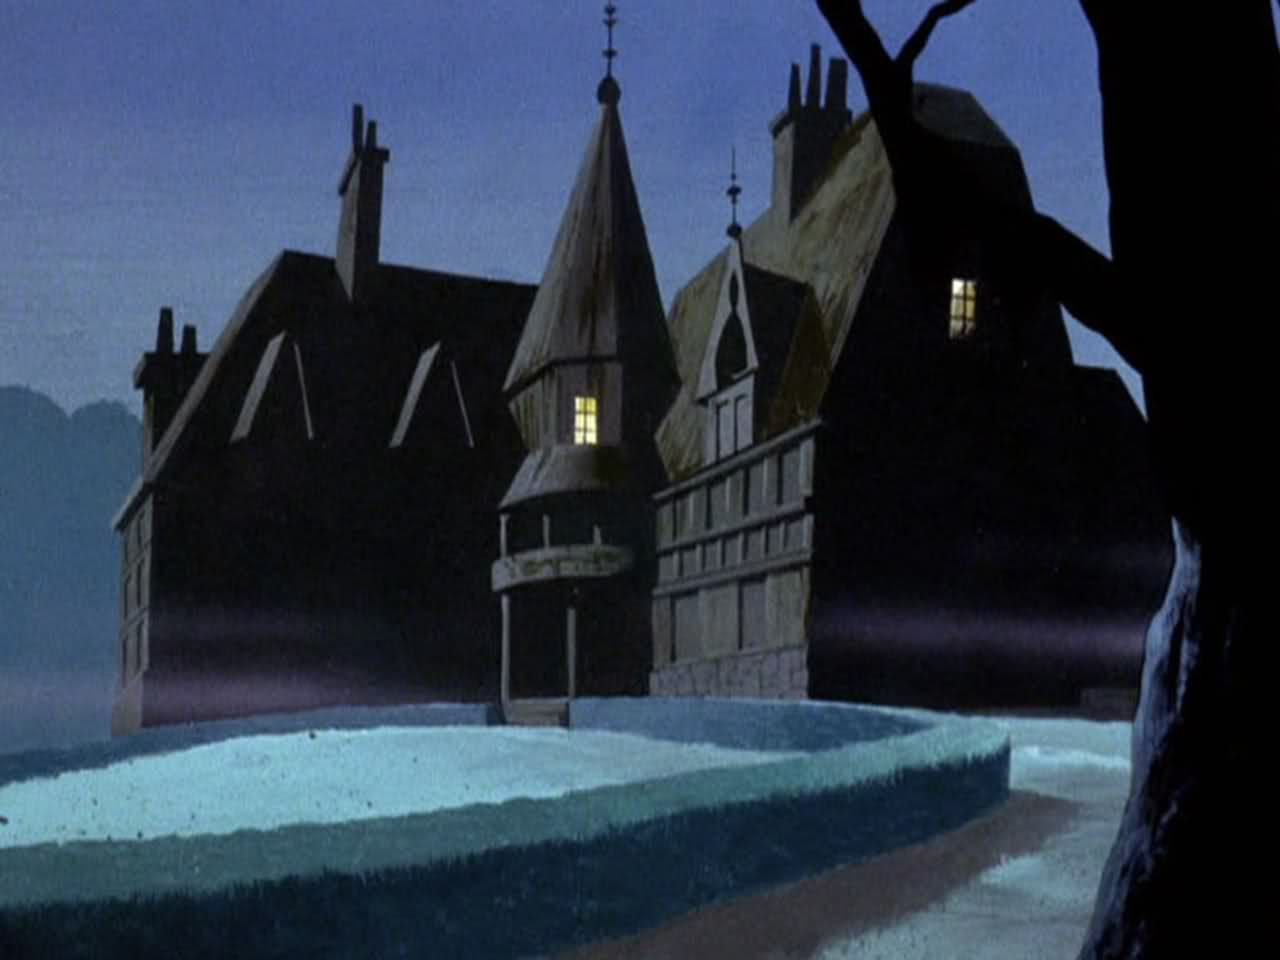 Haunted Mansion Cartoon Haunted House Pictures Scooby Doo Wallpaper Haunted House Scooby Doo Spooky Background Animation Background